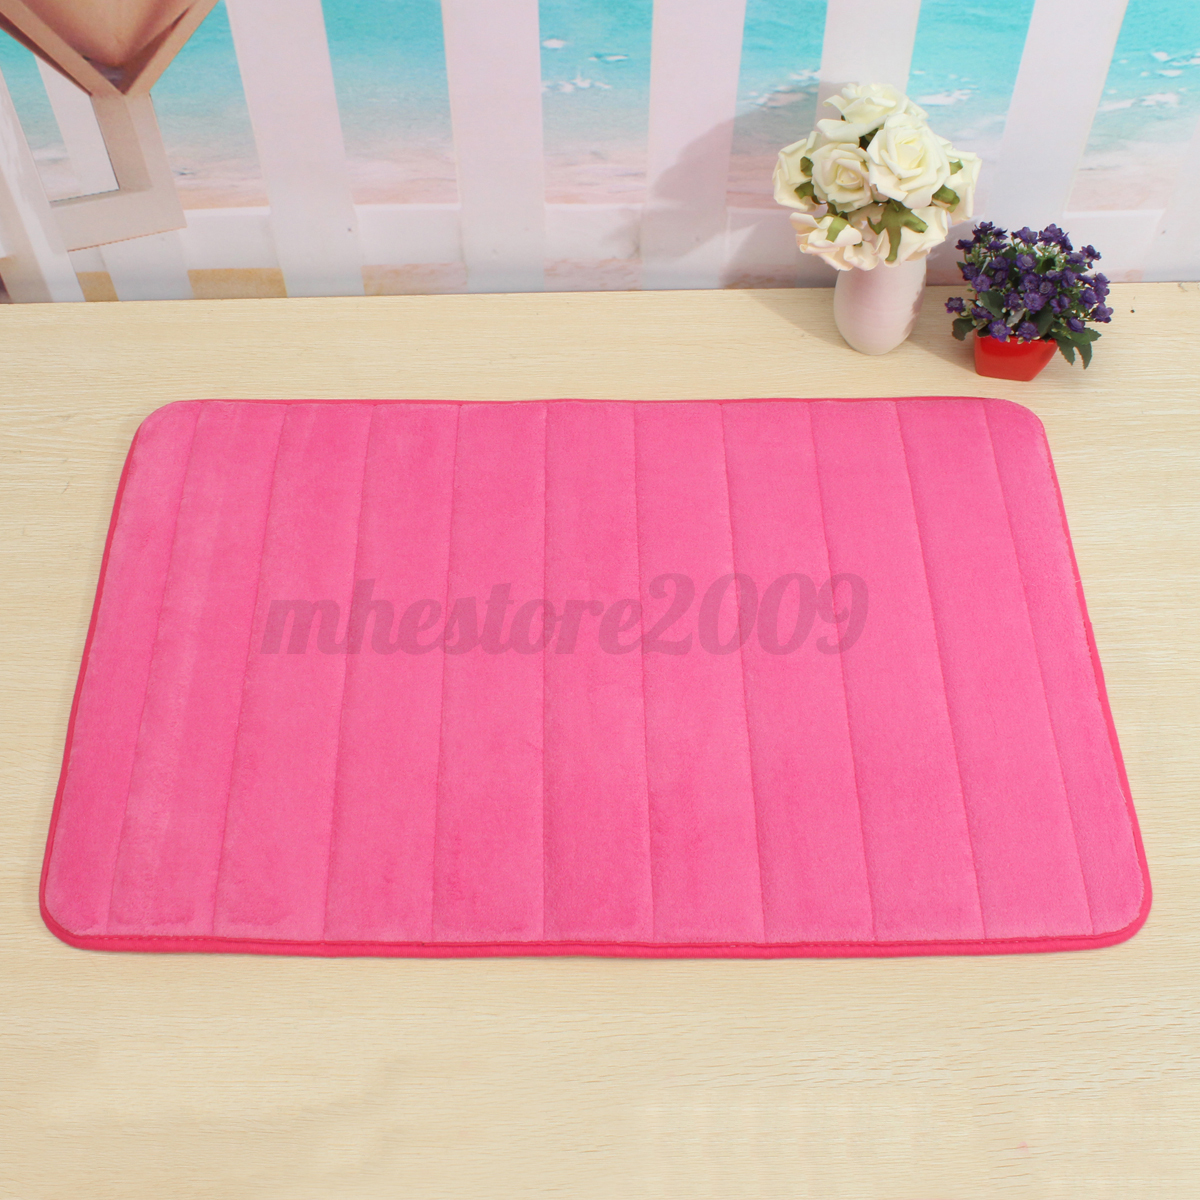 non slip bathroom floor memory foam non slip bathroom bath mat bedroom shower 19749 | 5CD7D697563747908D089ACDCFCF93D69DCB4BC716CC9D439BD246AC93C633D243339C996ED29366C783D263C6CA1623CFC653CA039EAB539DF5CD13